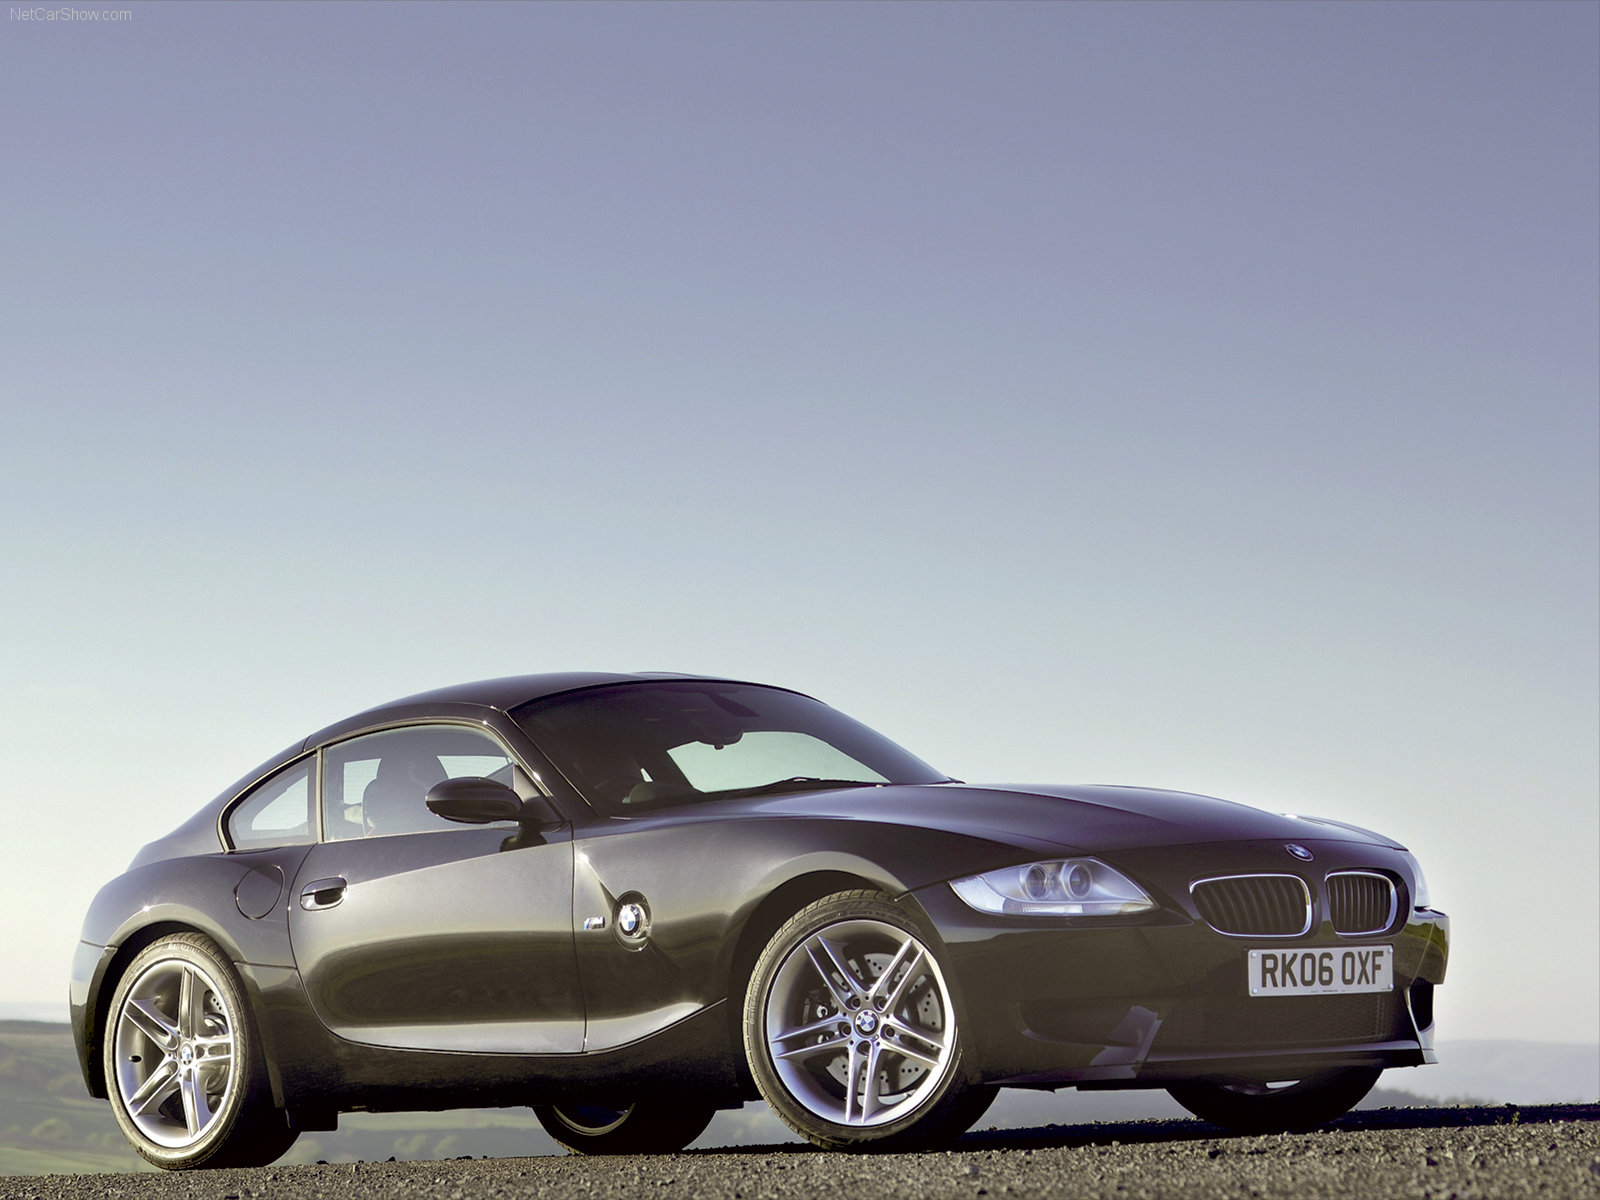 Bmw Z4 M Coupe Photos Photogallery With 27 Pics Carsbase Com